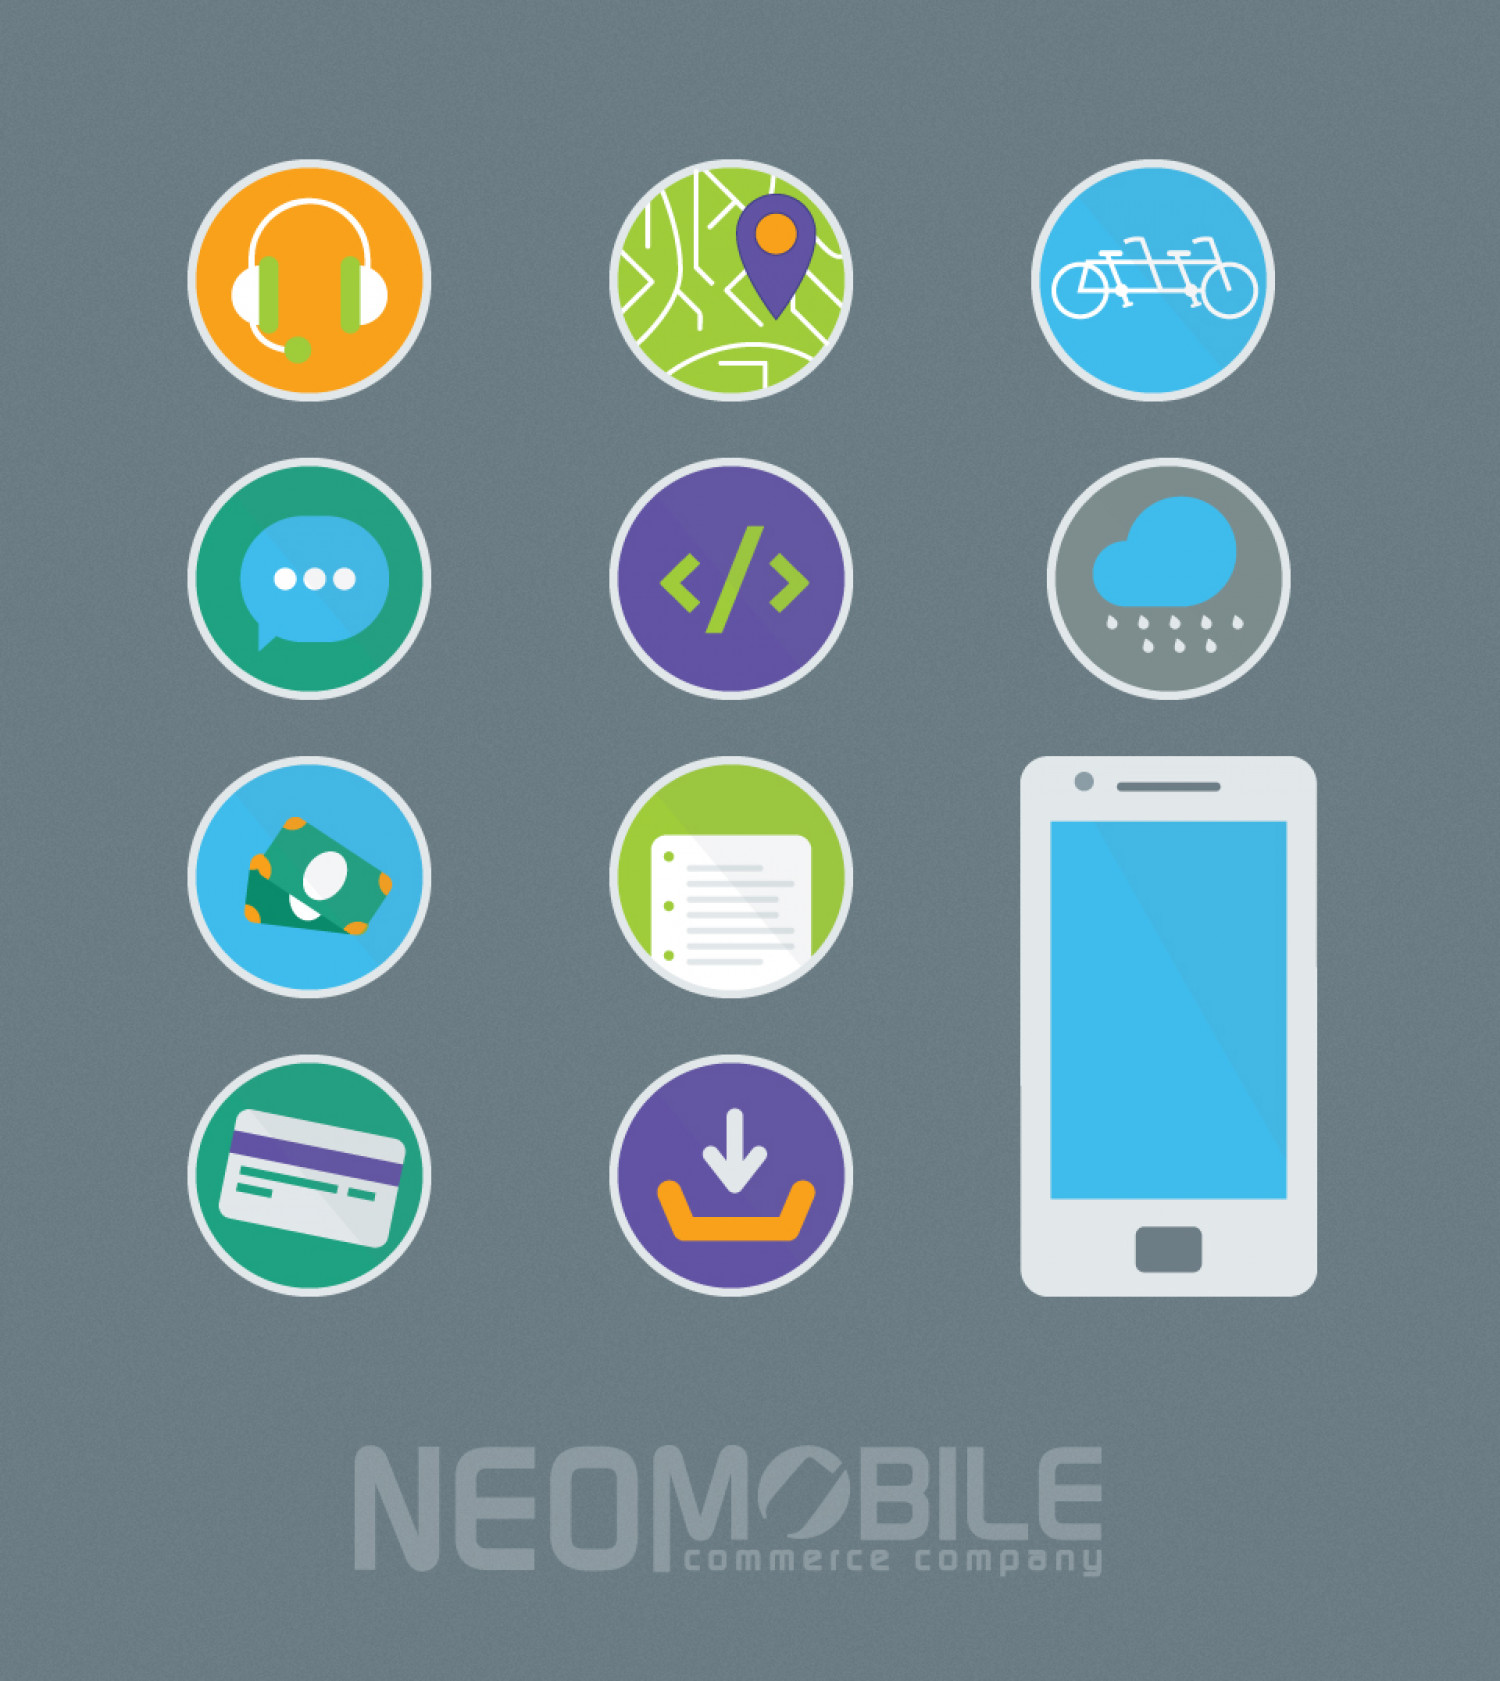 Web & Graphic Design Freebies by Neomobile Infographic